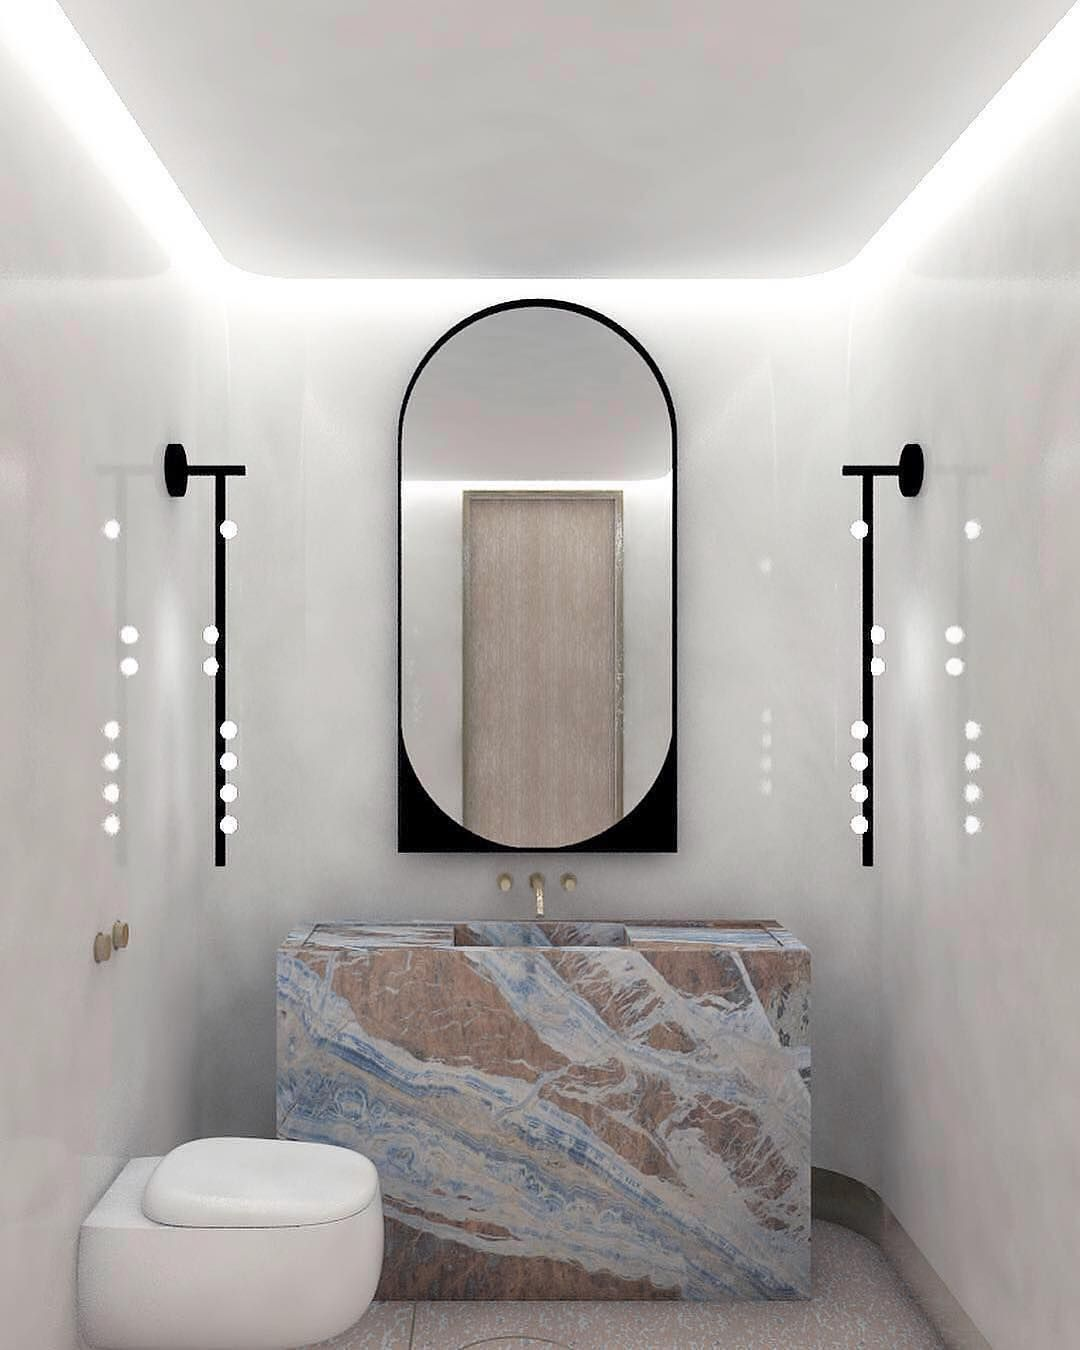 Gorgeous Bathroom Rendering A Gorgeous Bathroom Rendering By Mkcarchitecture Featuring Kinandcompany Slip Mirror An Badezimmer Luxus Badezimmer Traumdusche